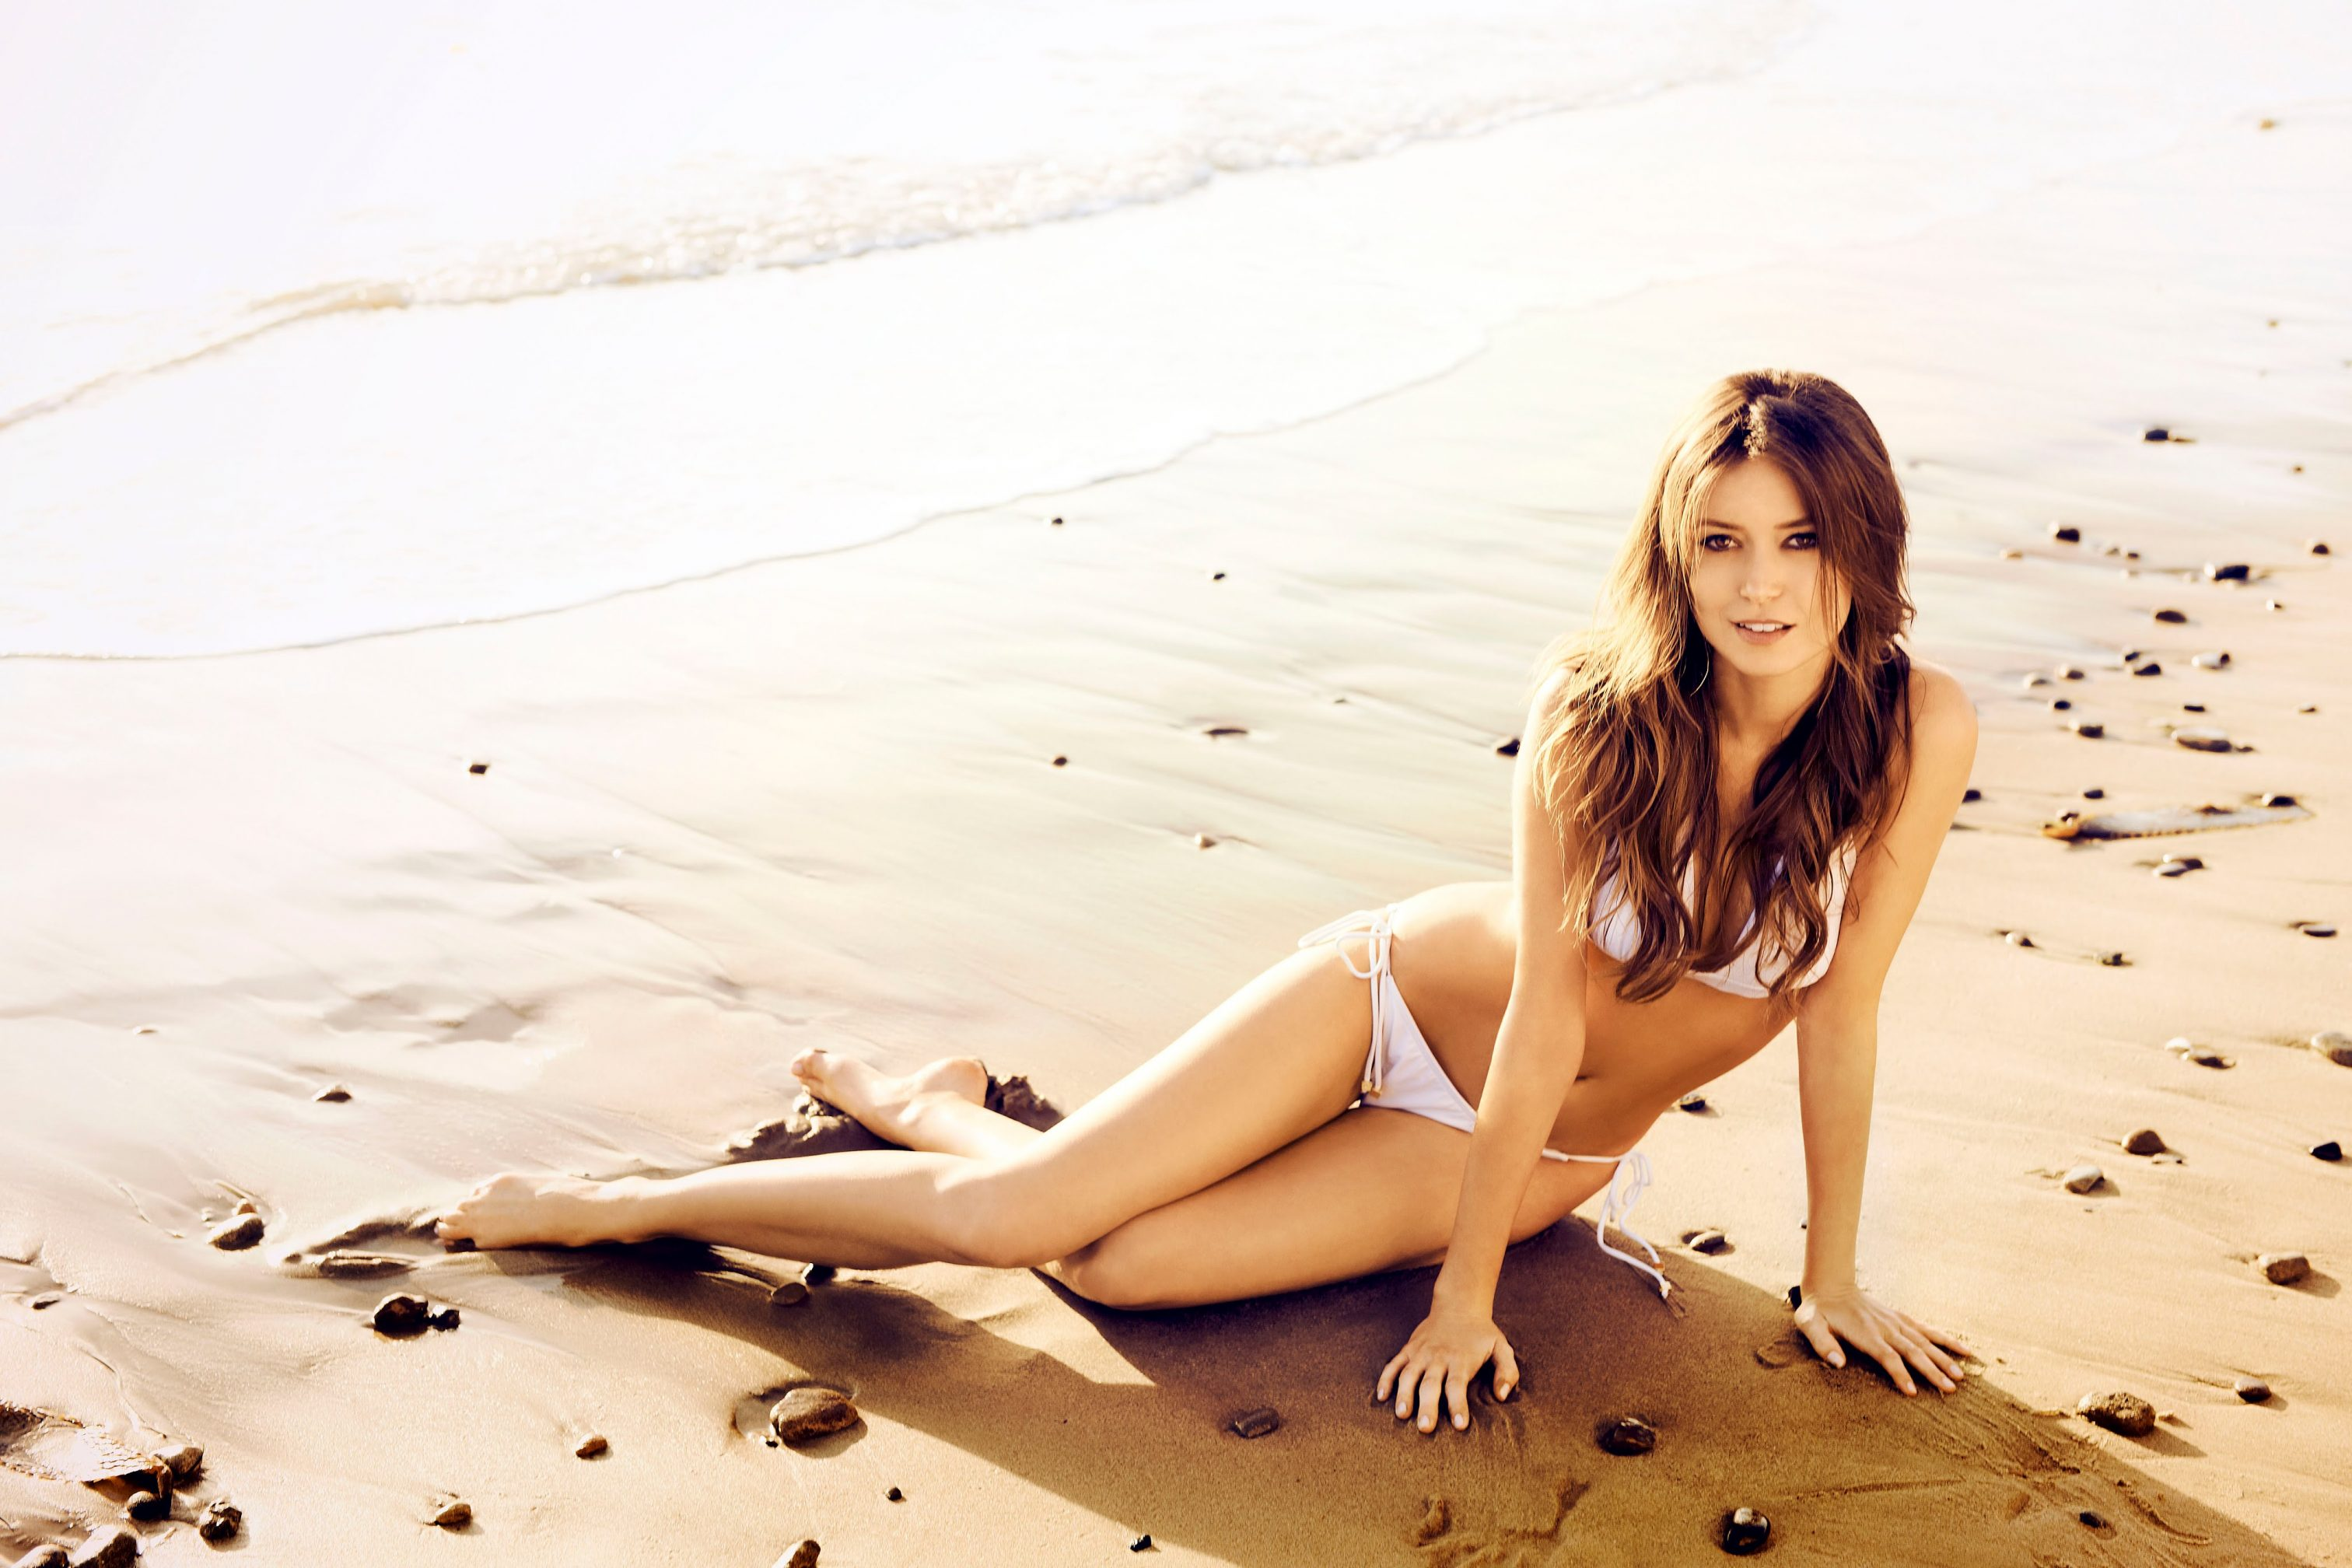 summer glau bikini pics & hot photos